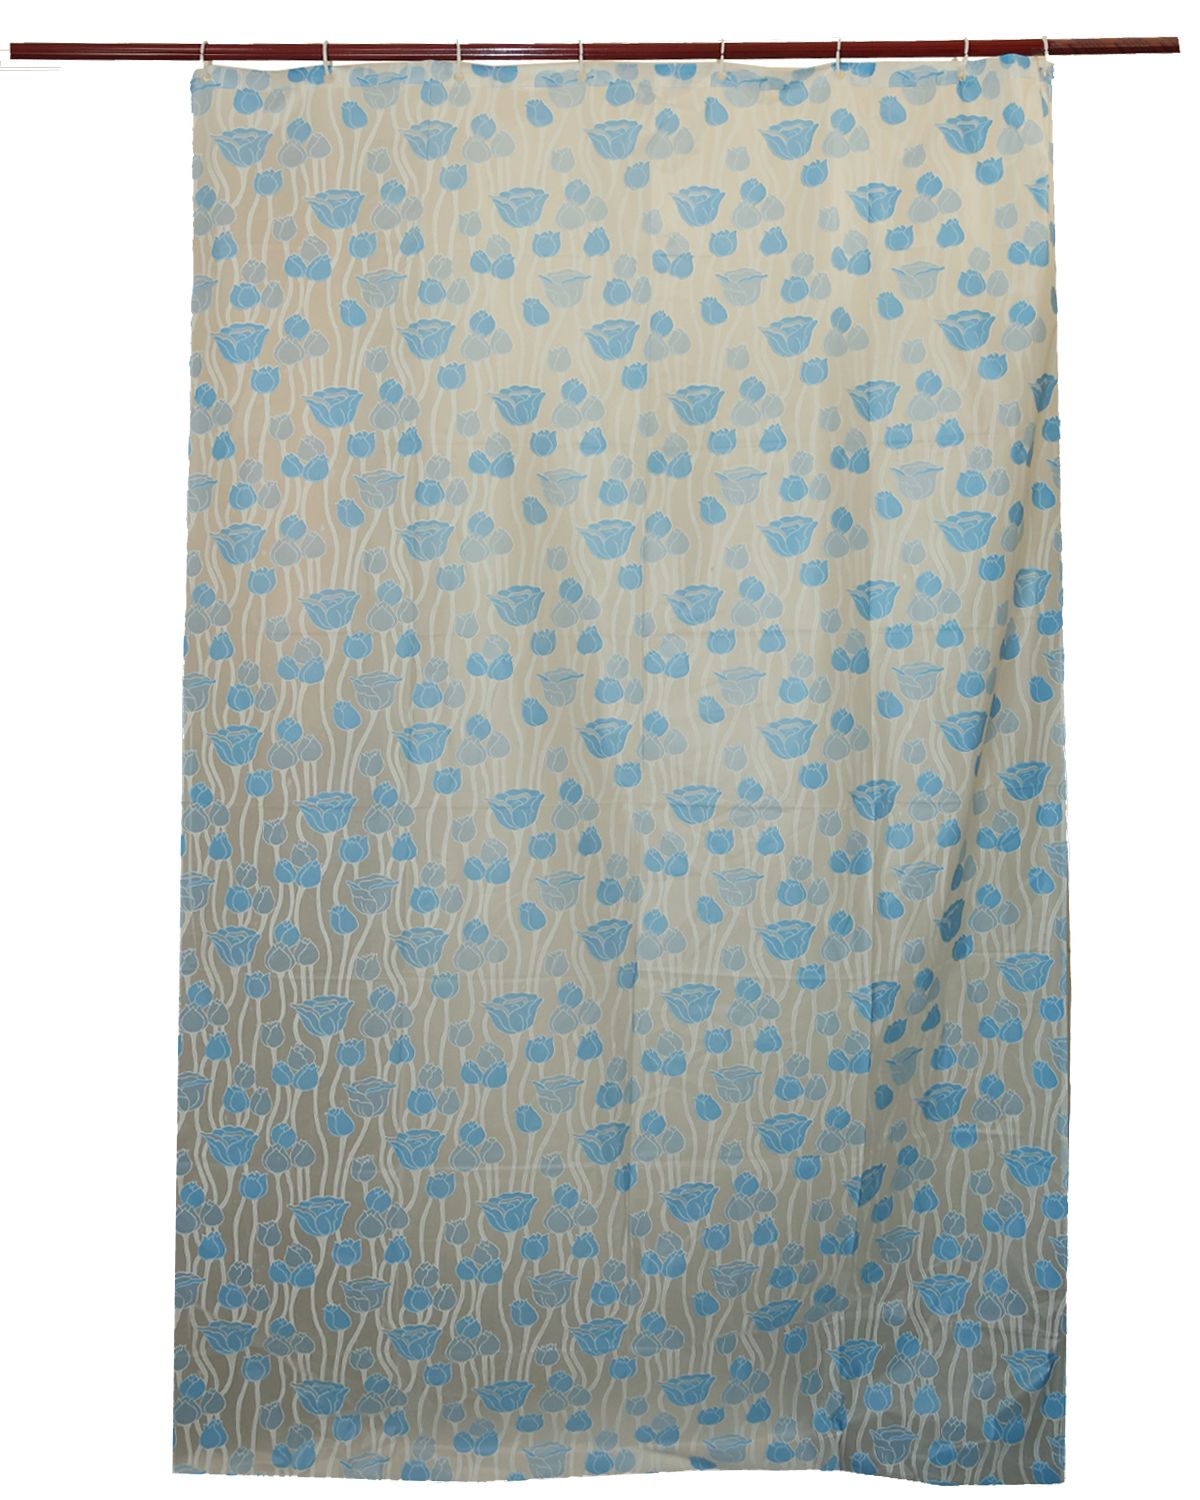 Kuber Industries™ Sky Blue Floral Design PVC Premium Shower Curtain - 7 Feet -84*54 Inches Set of 2 Pcs- 8 Hooks (SHWCU024)